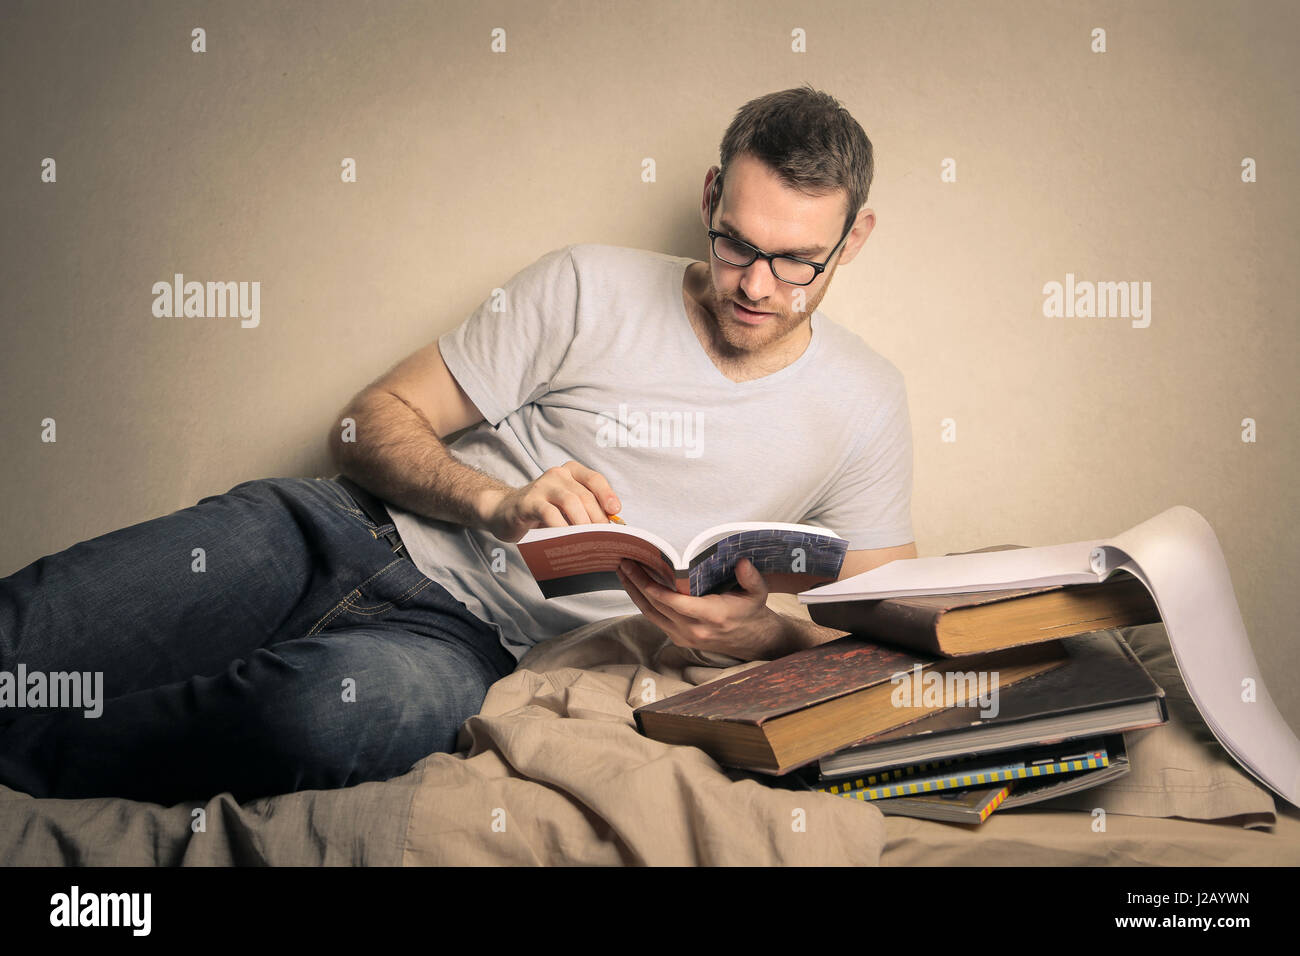 Young man studying on bed Photo Stock